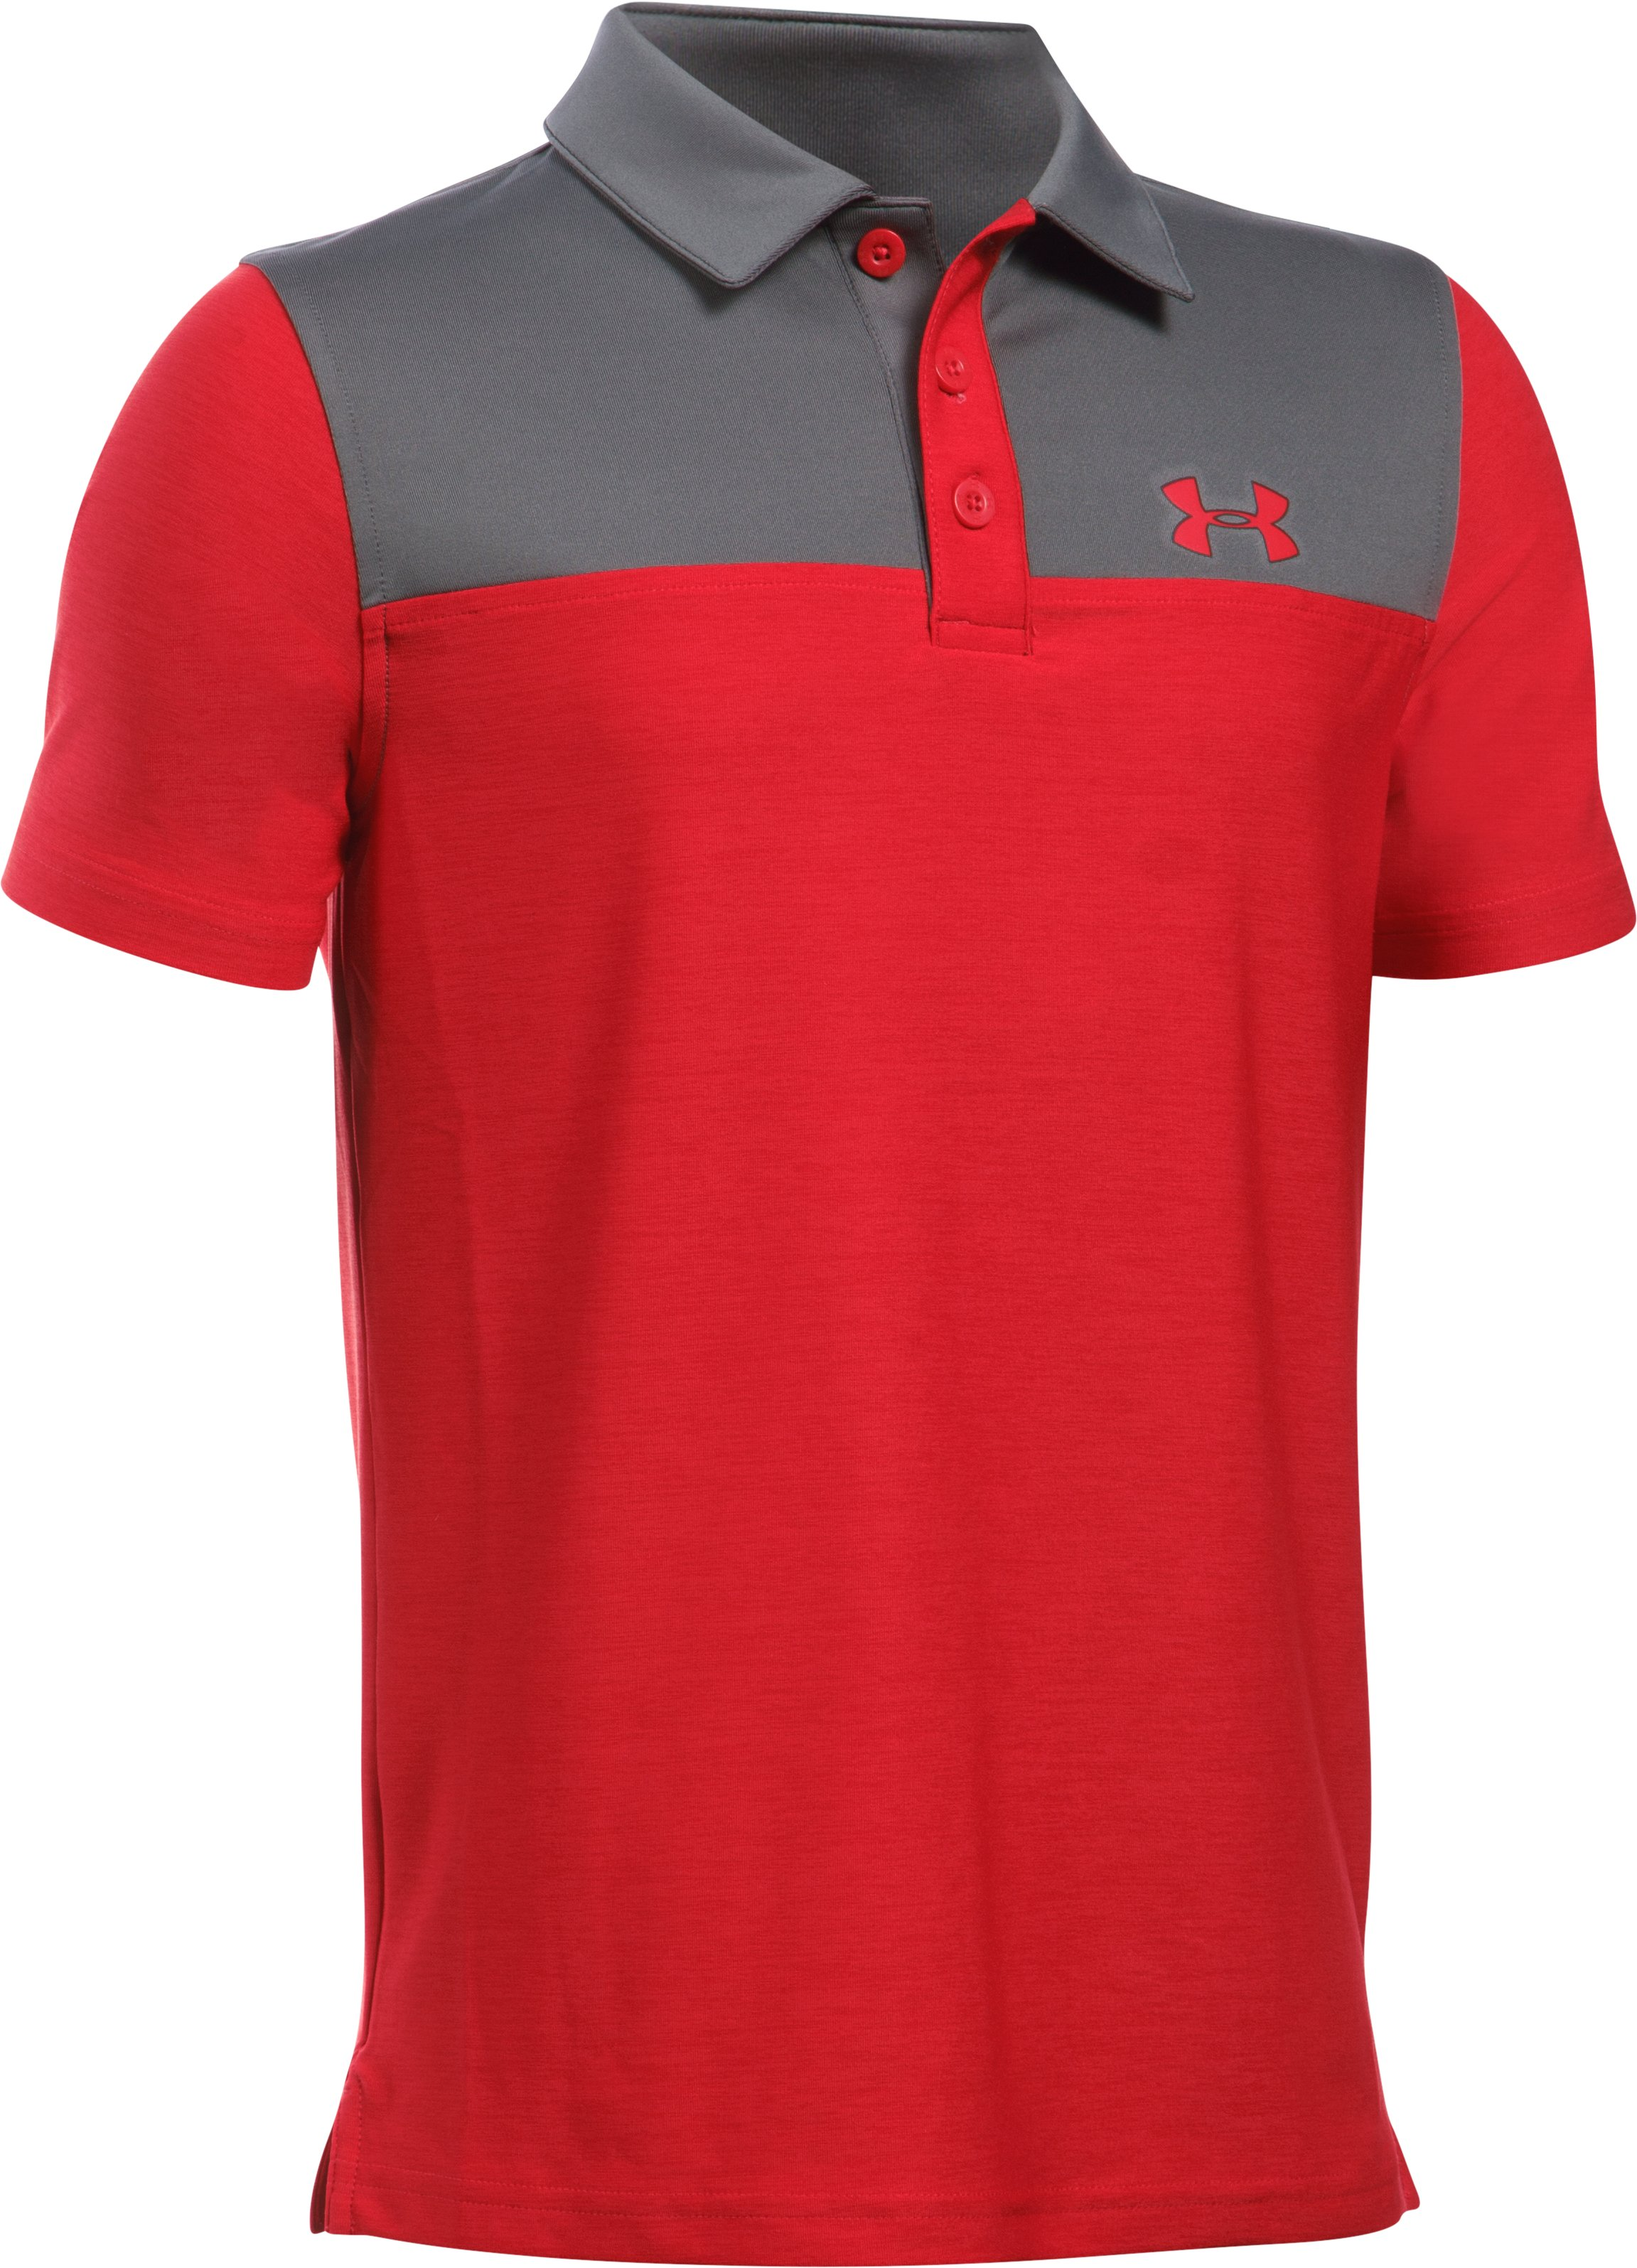 Boys' UA Match Play Blocked Polo , Red, zoomed image